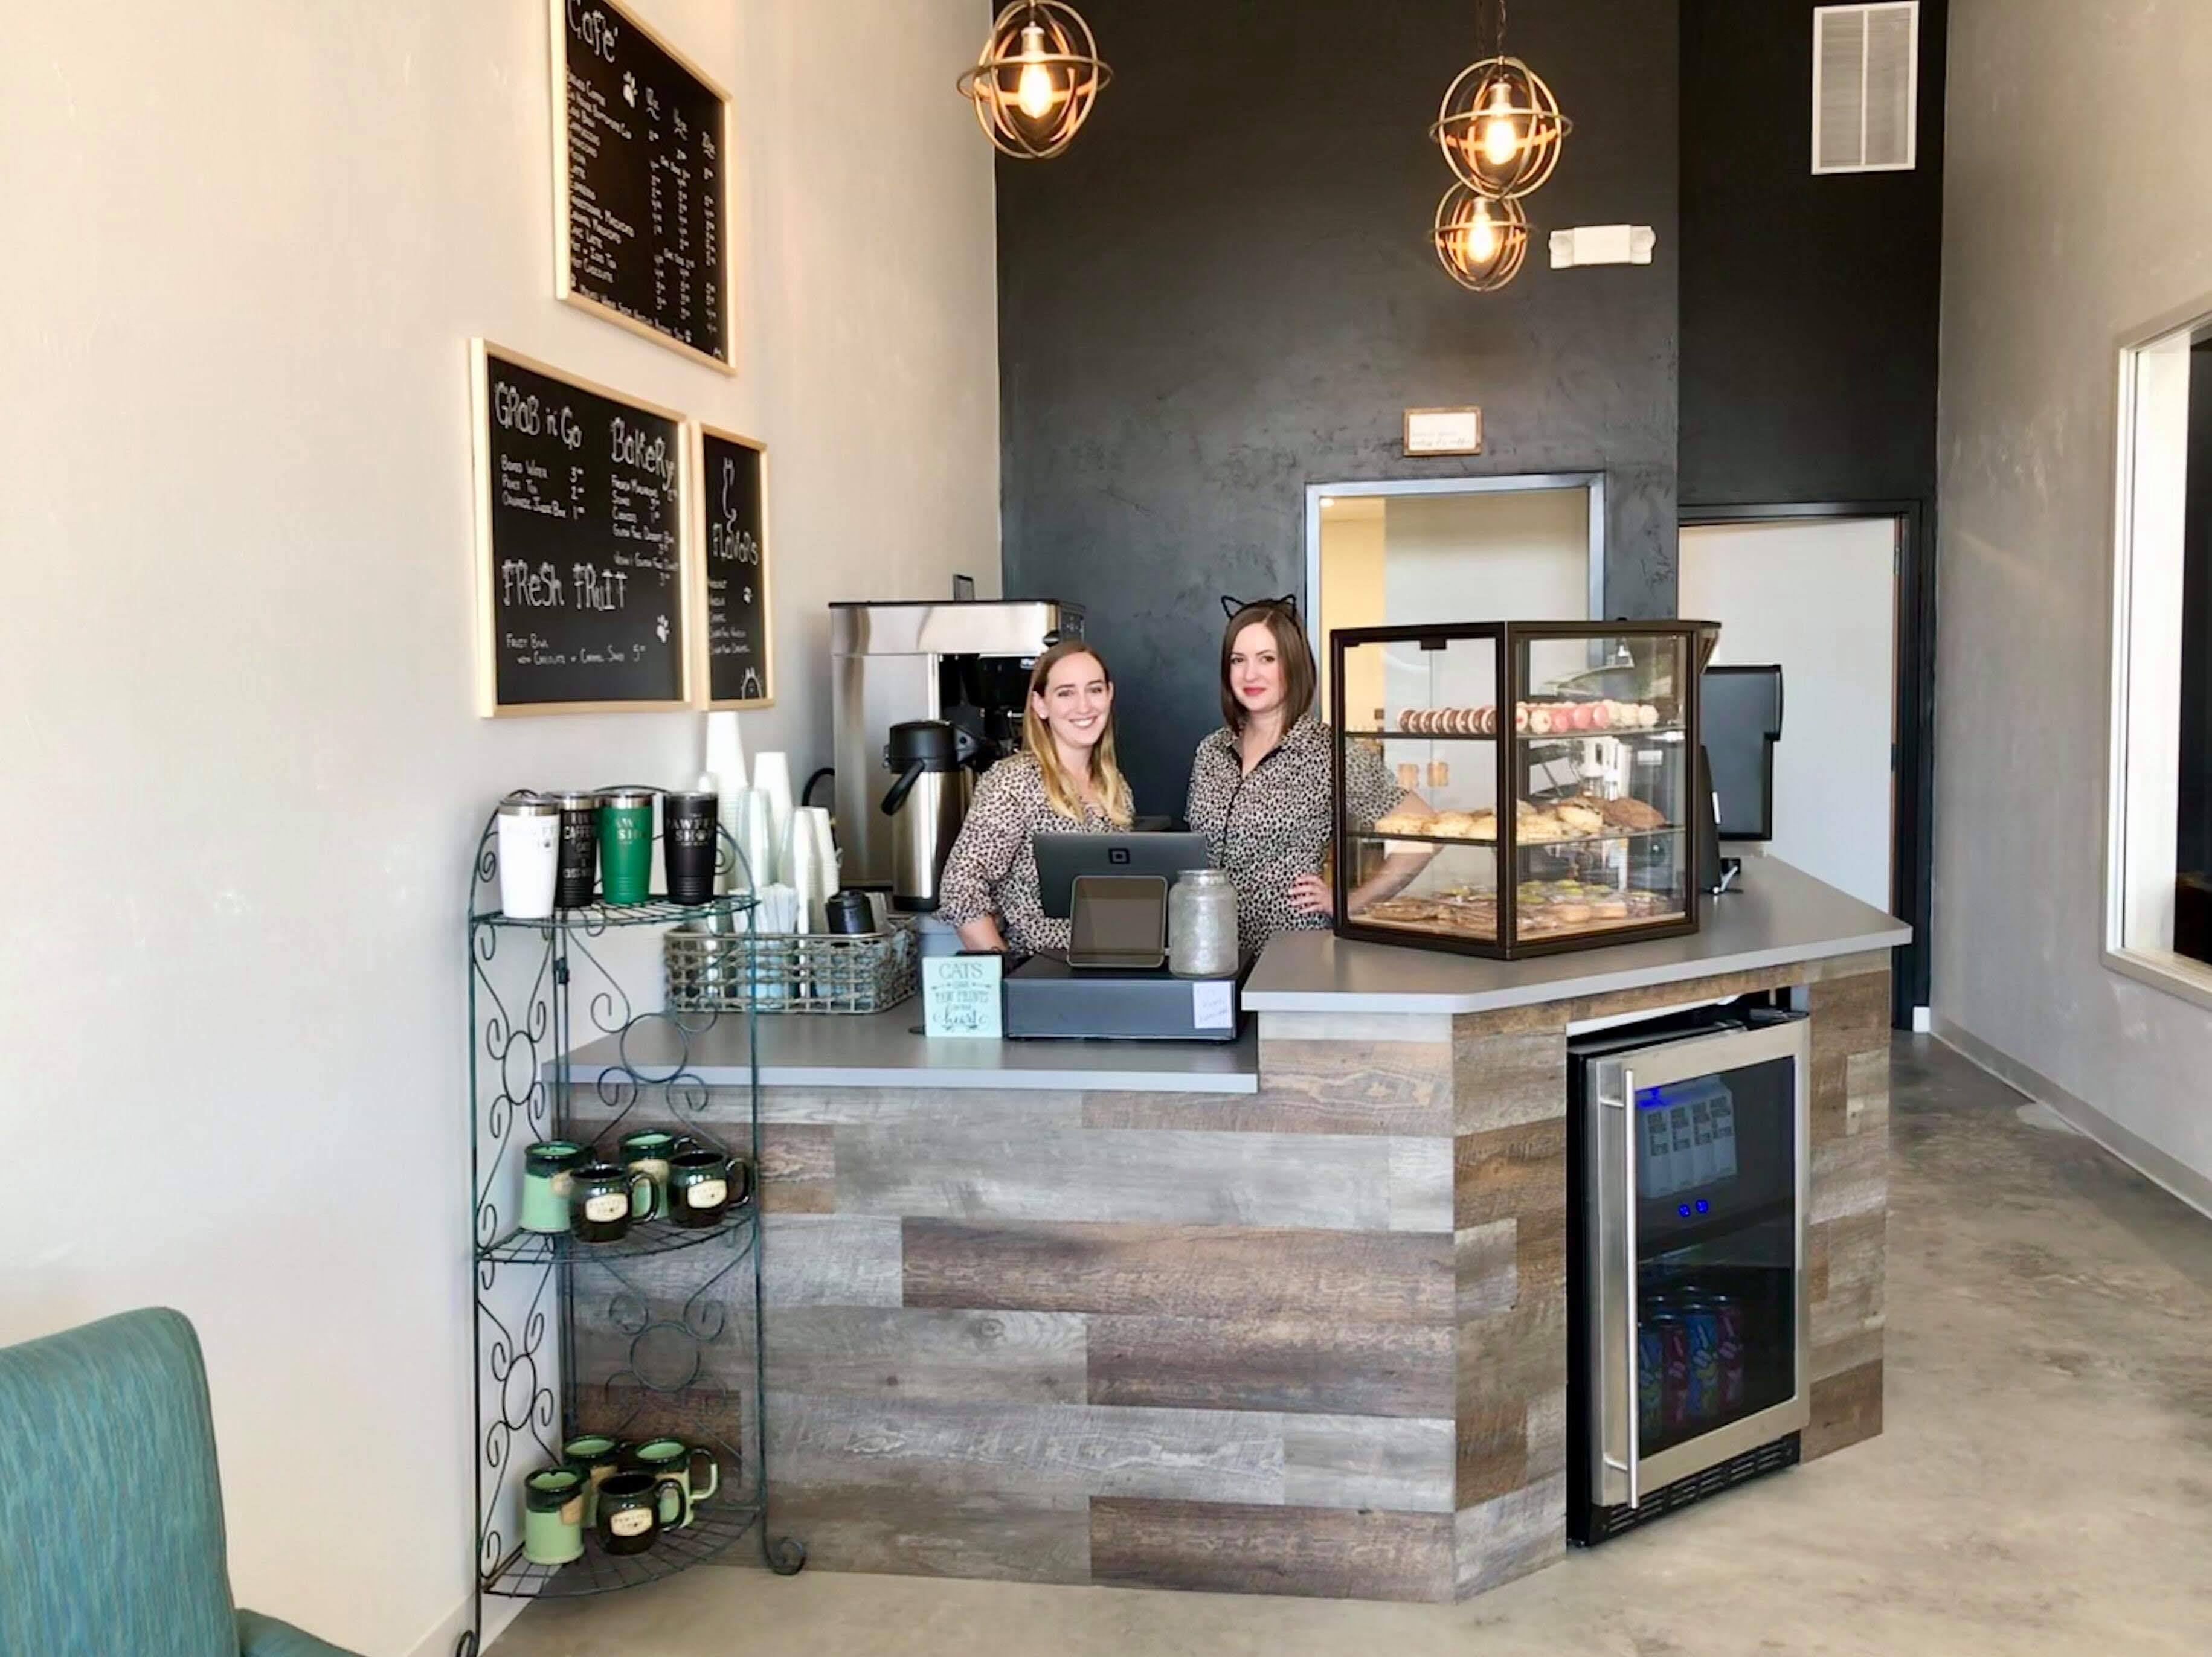 The Pawffee Shop Cat Café owners Leah Enking, left, and Elizabeth Feldhausen on the café side of their Grand Chute business.